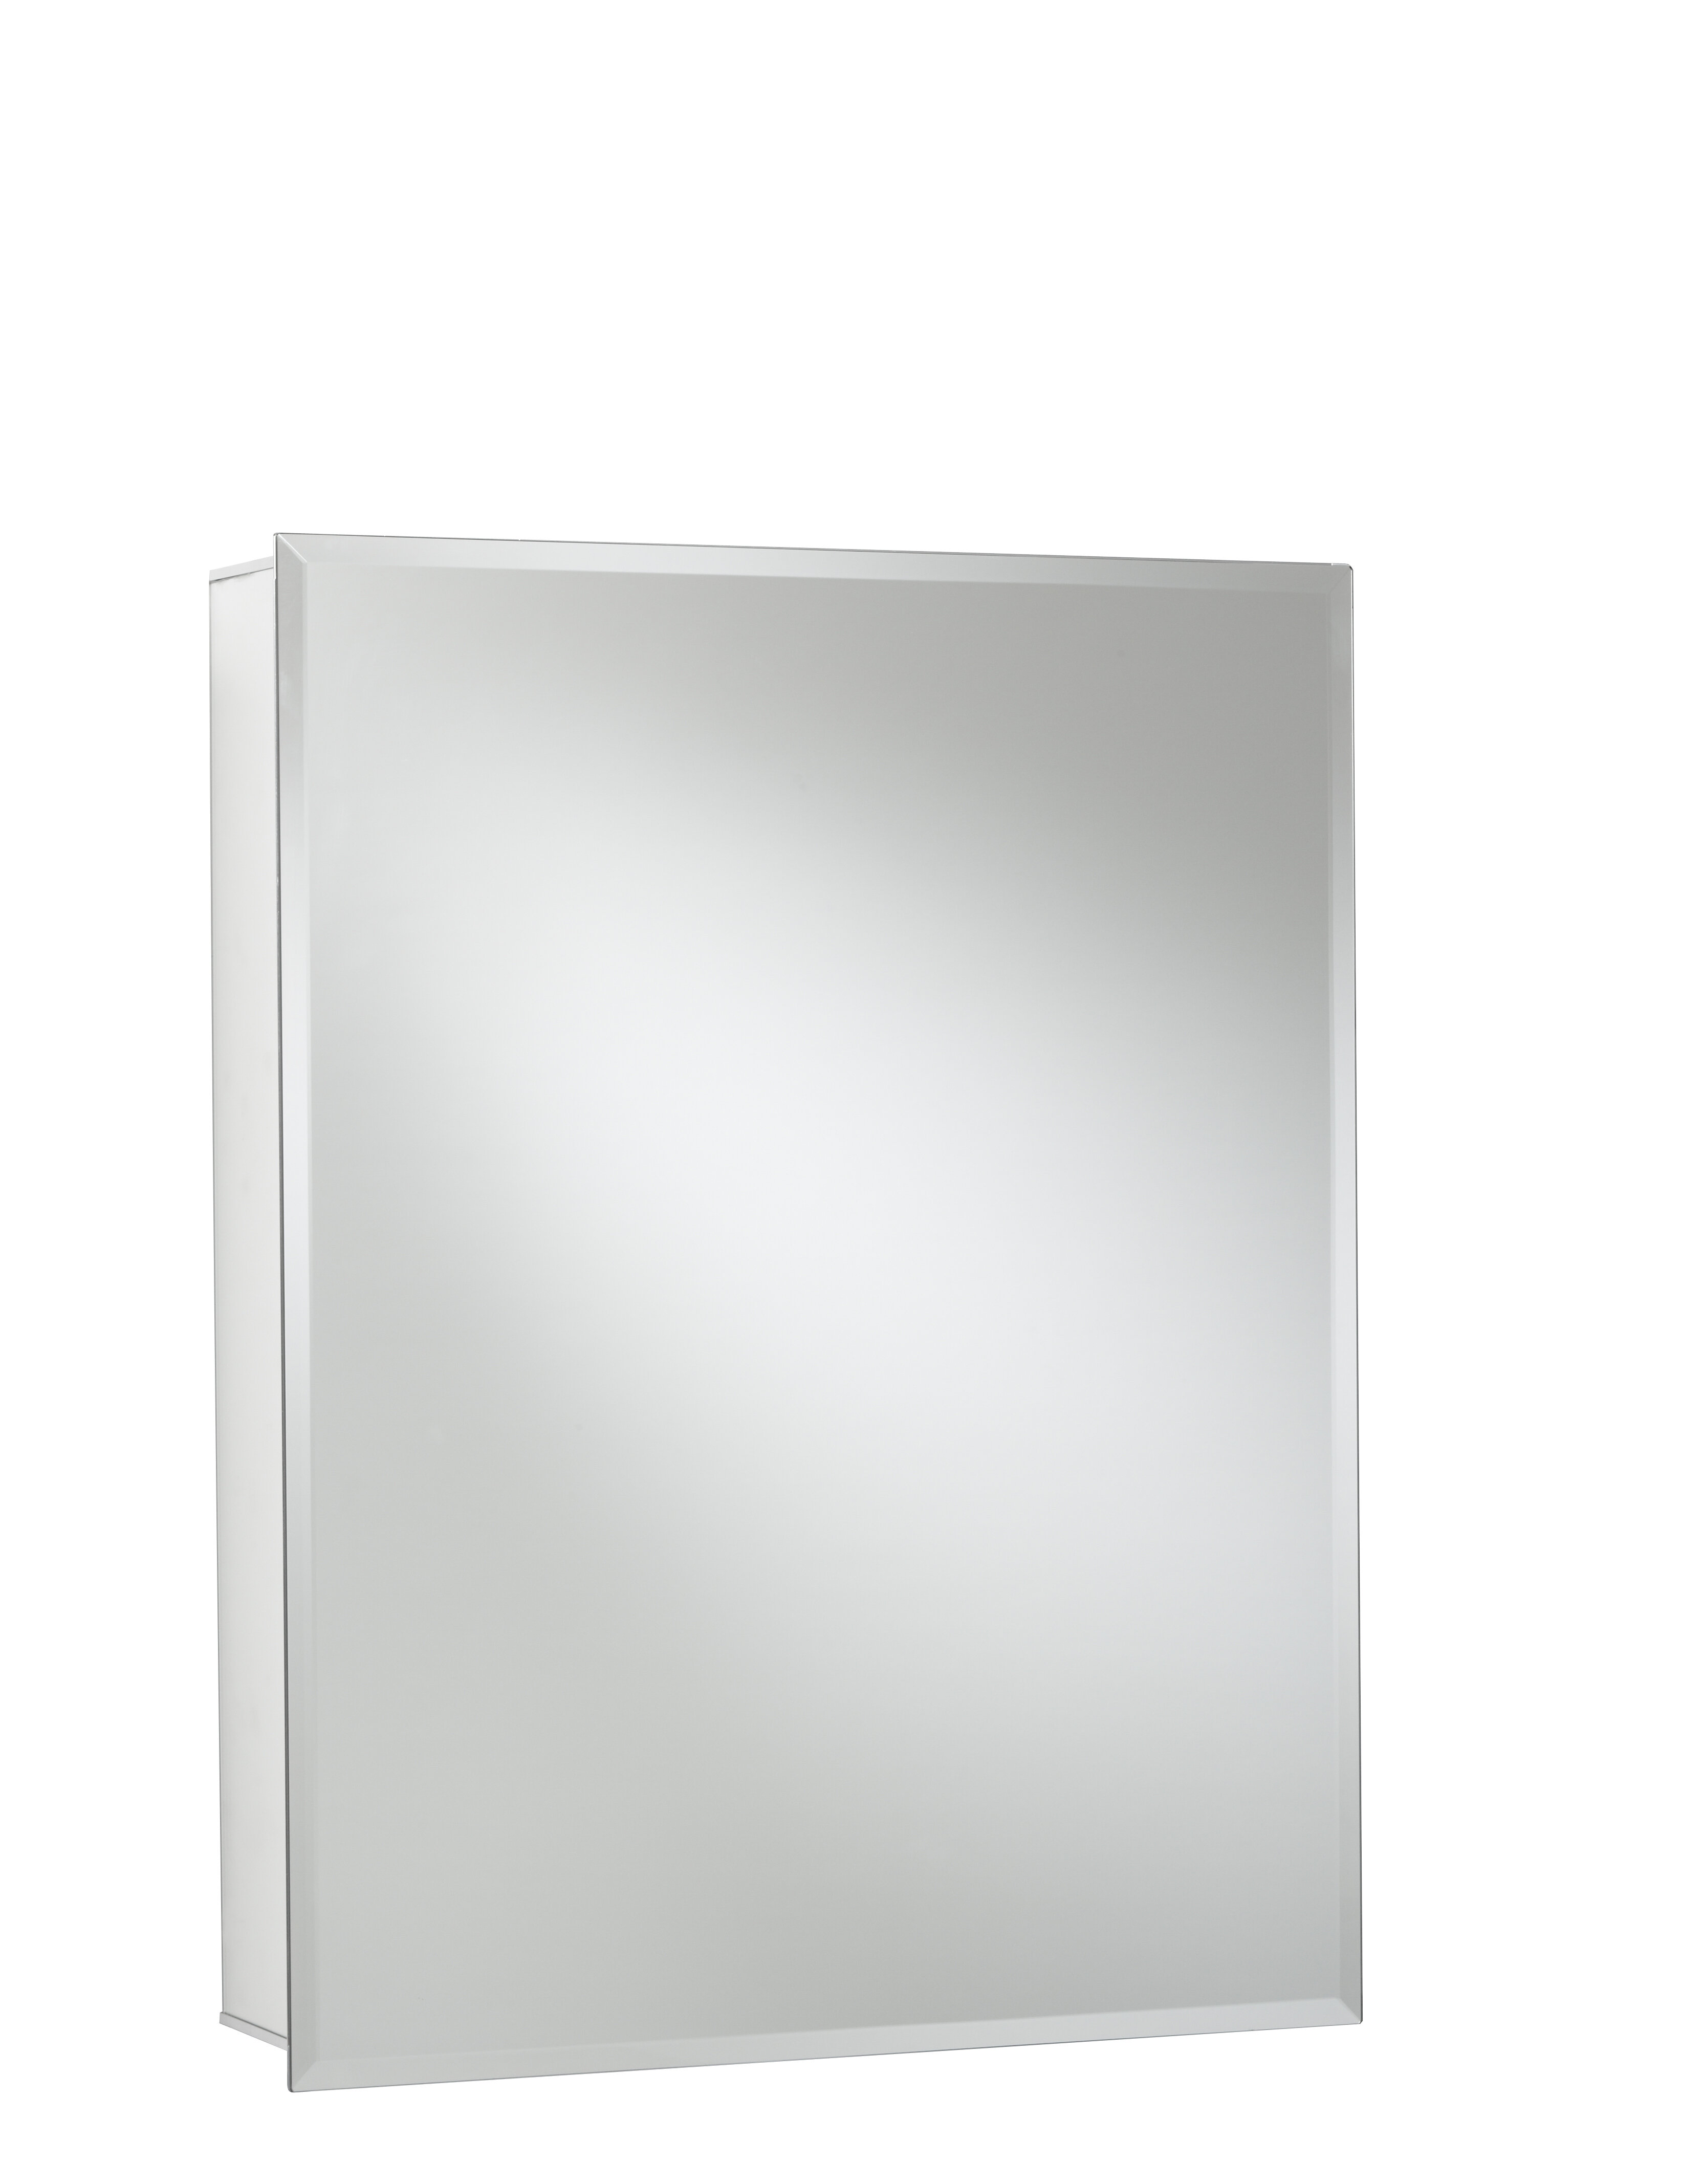 Jacuzzi 24 X 30 Recessed Or Surface Mount Frameless Medicine Cabinet With 2 Adjule Shelves Reviews Wayfair